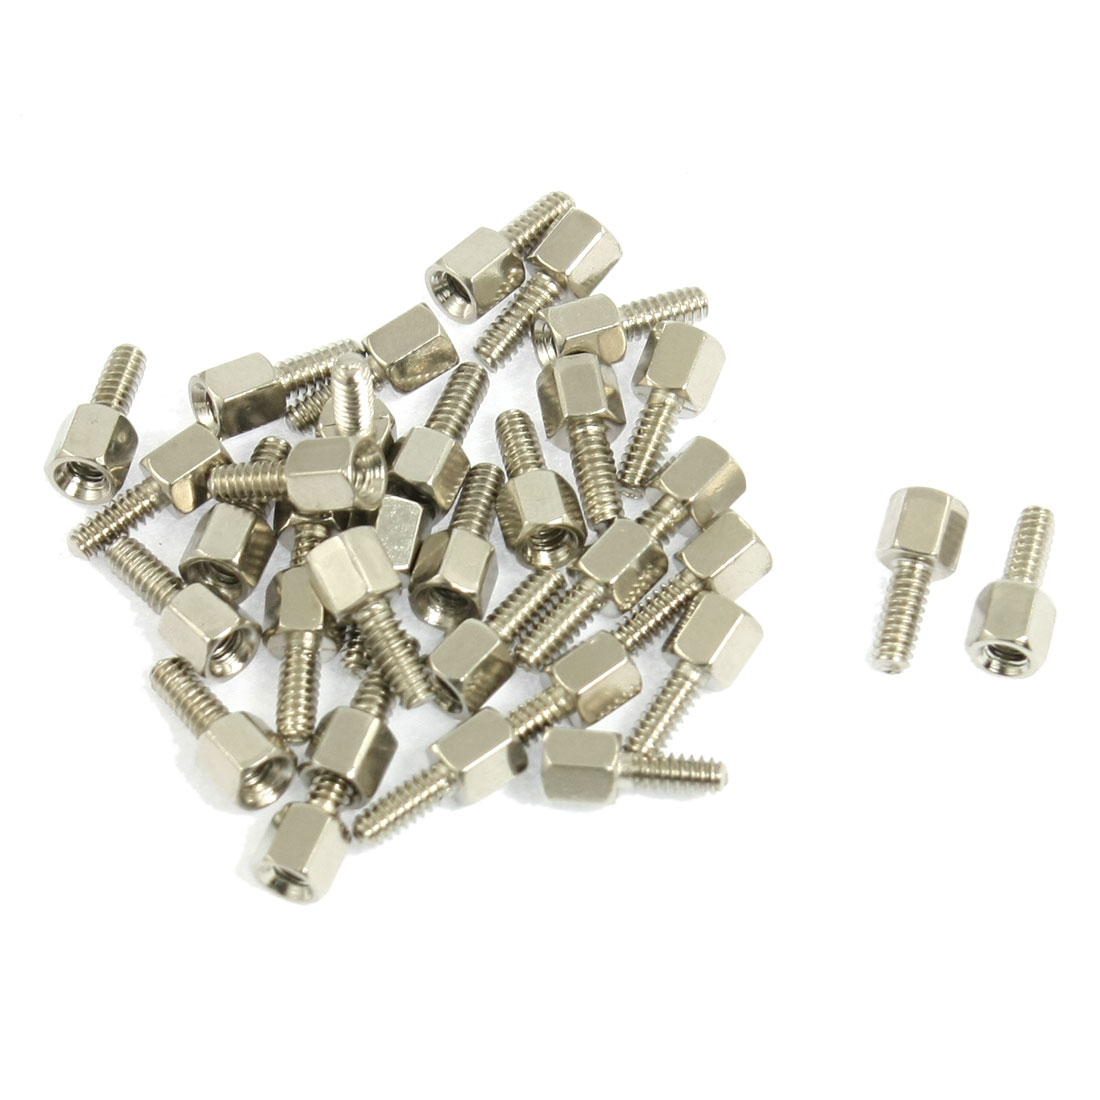 33 Pcs Silver Tone 2.6mm Male 2.3mm Female Screw Thread PCB Stand-off Spacer